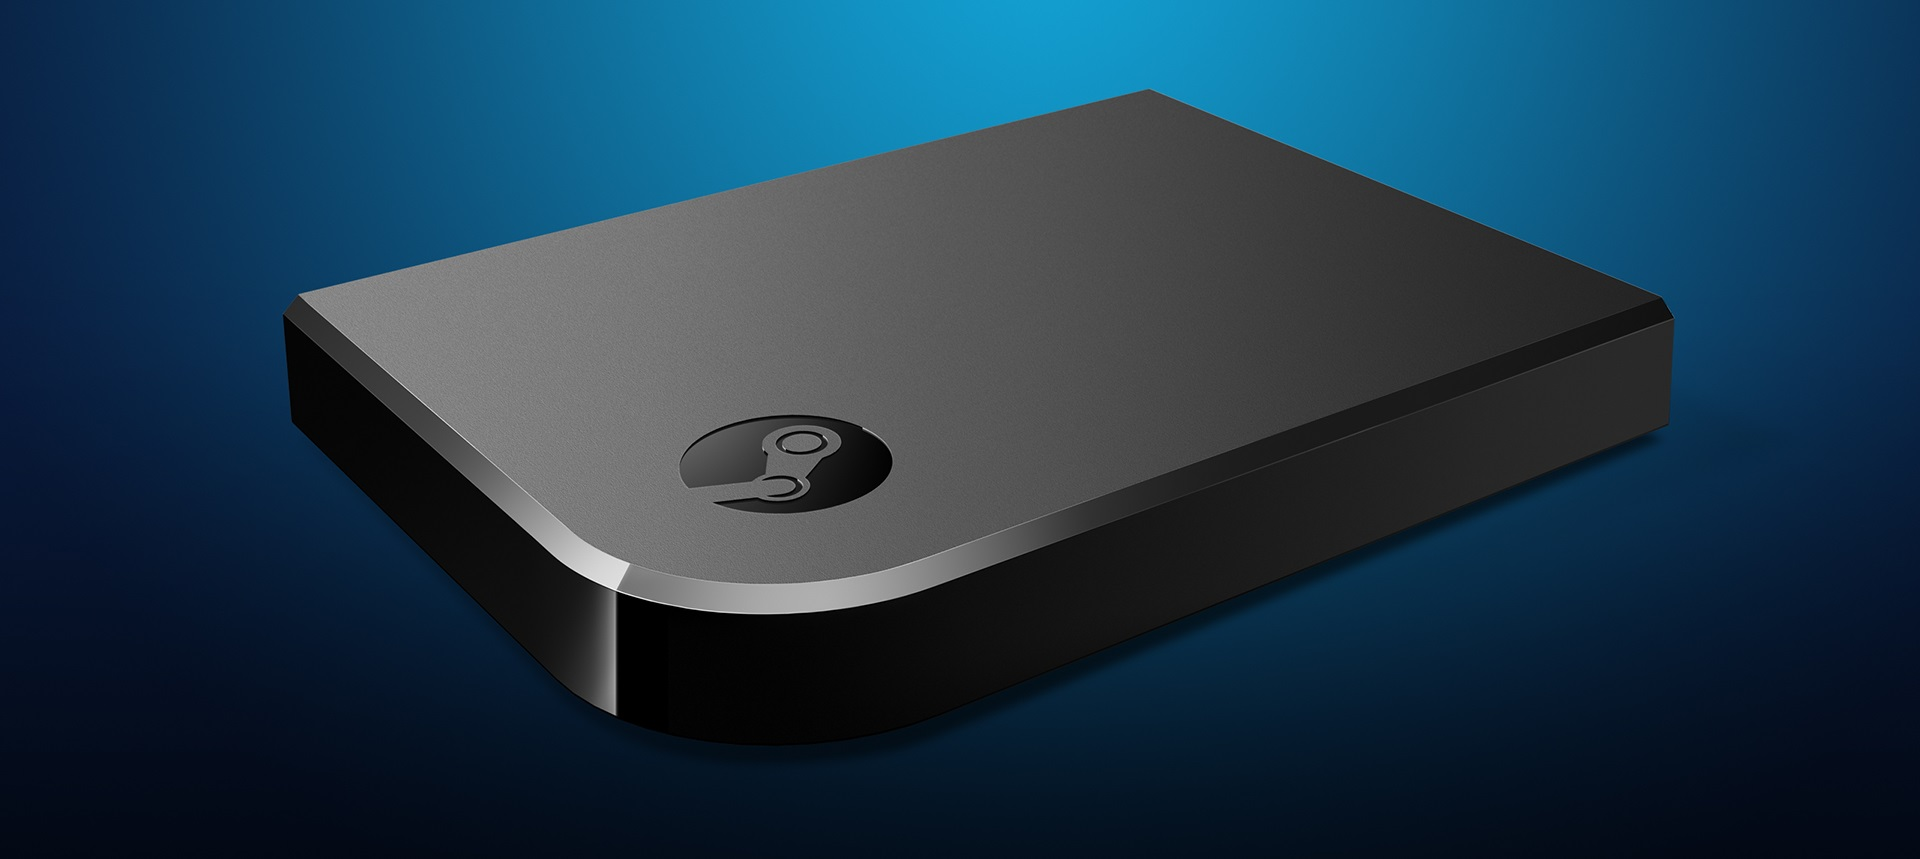 steam-link-samsung